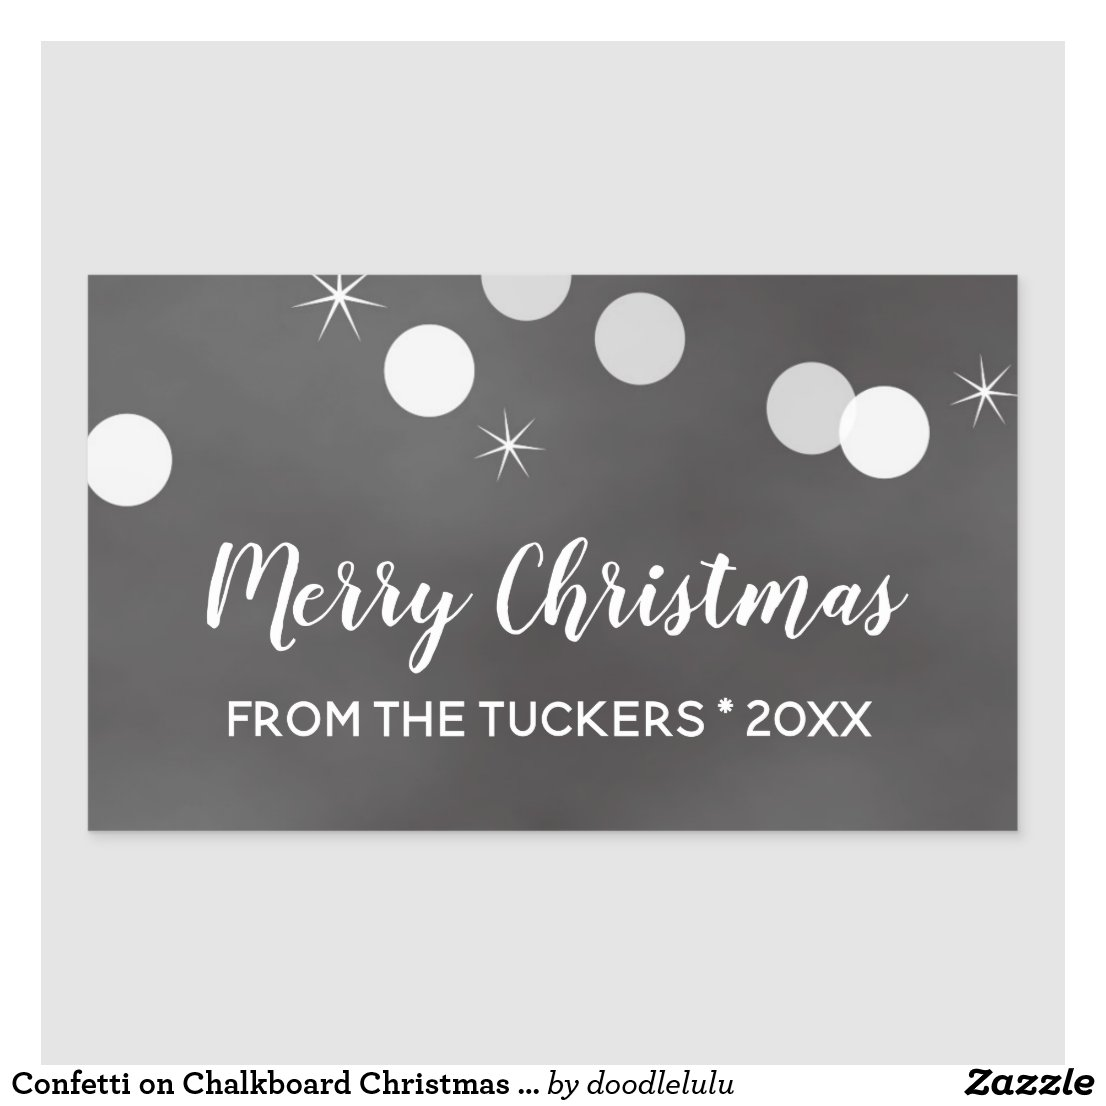 Confetti on Chalkboard Christmas Tag